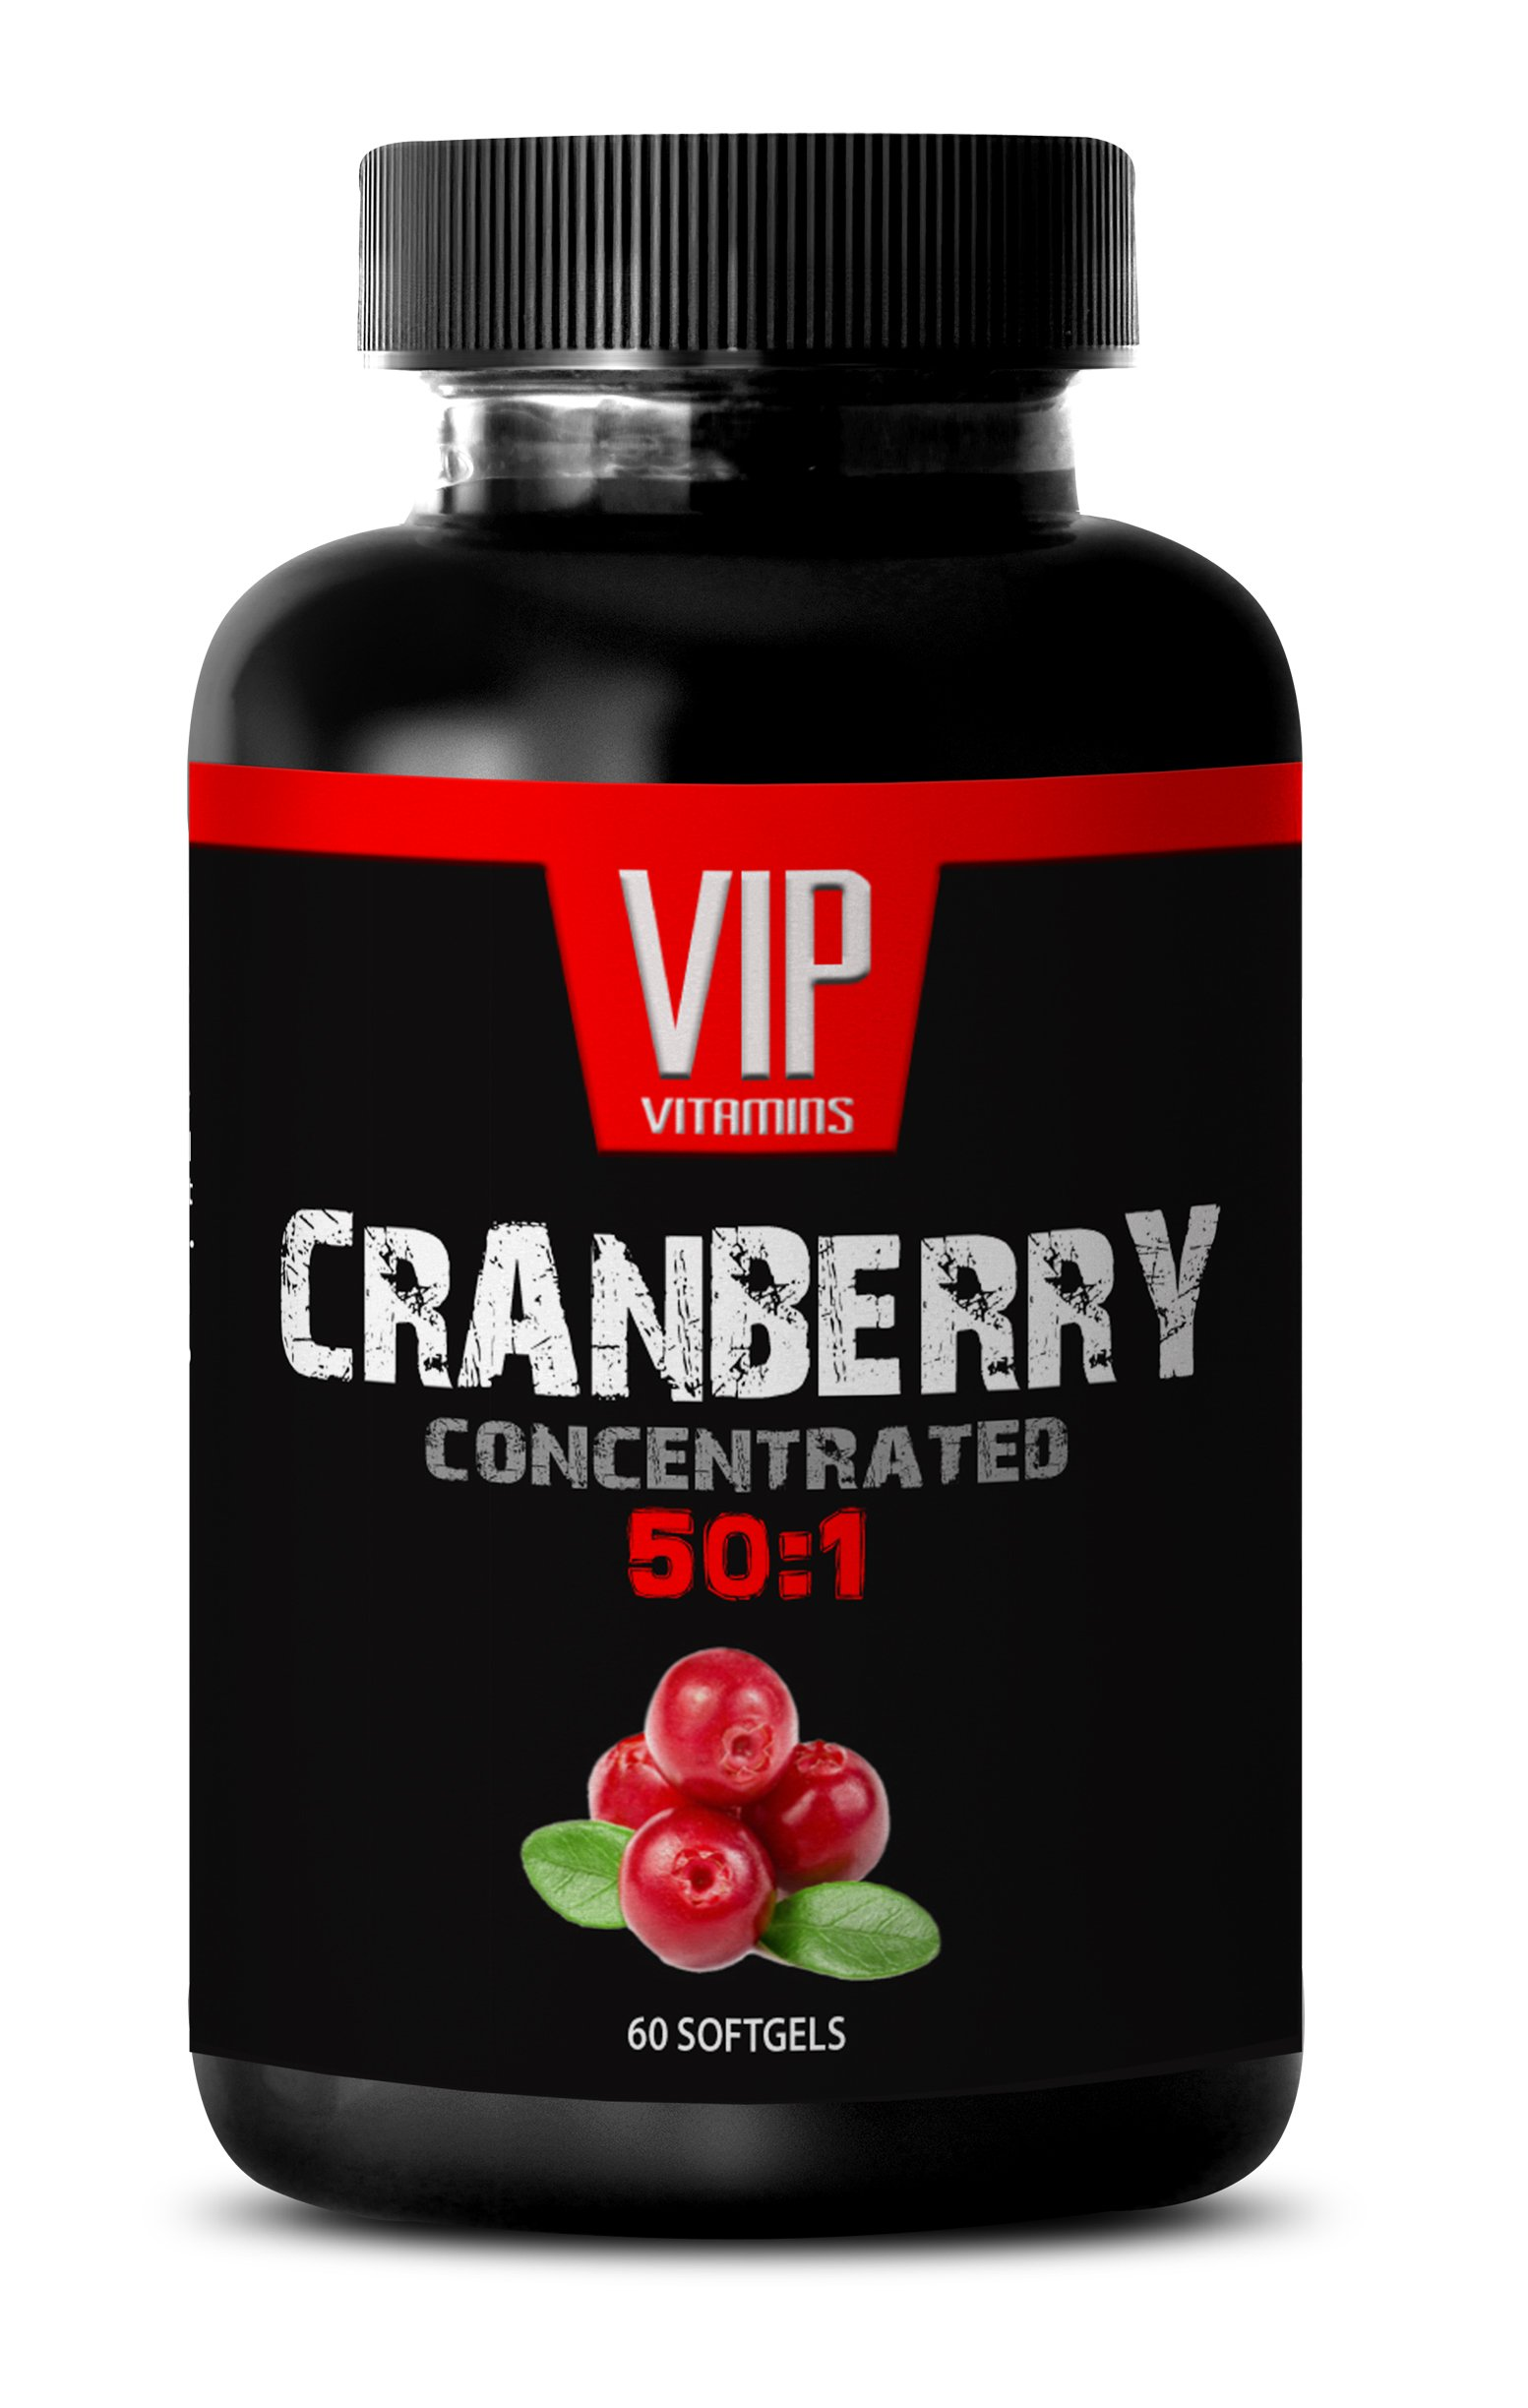 VIP VITAMINS Urinary support - CRANBERRY CONCENTRATED EXTRACT 252Mg 50: 1 - Cranberry maximum strength urinary tract support - 1 Bottle 60 softgels